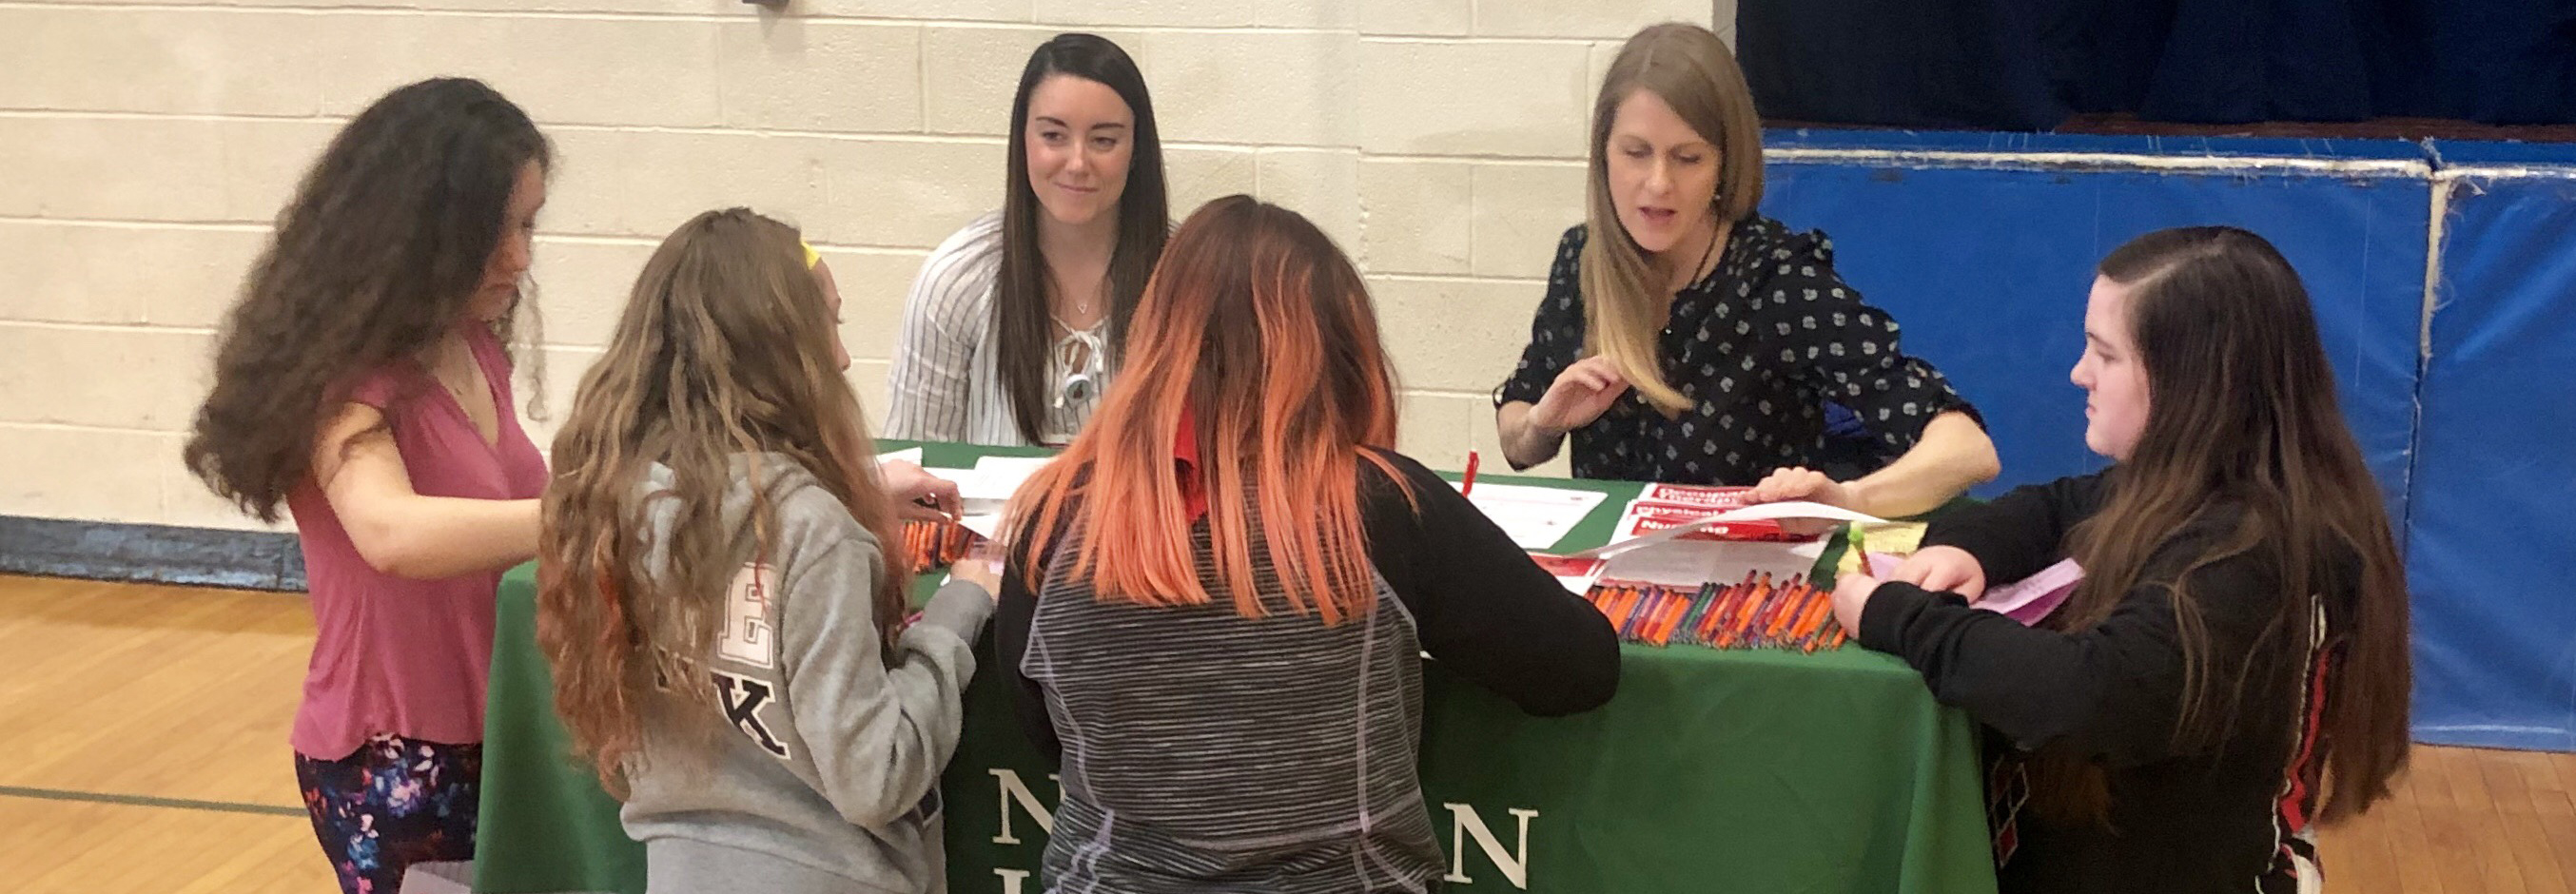 students talk with adults at a table during a career fair